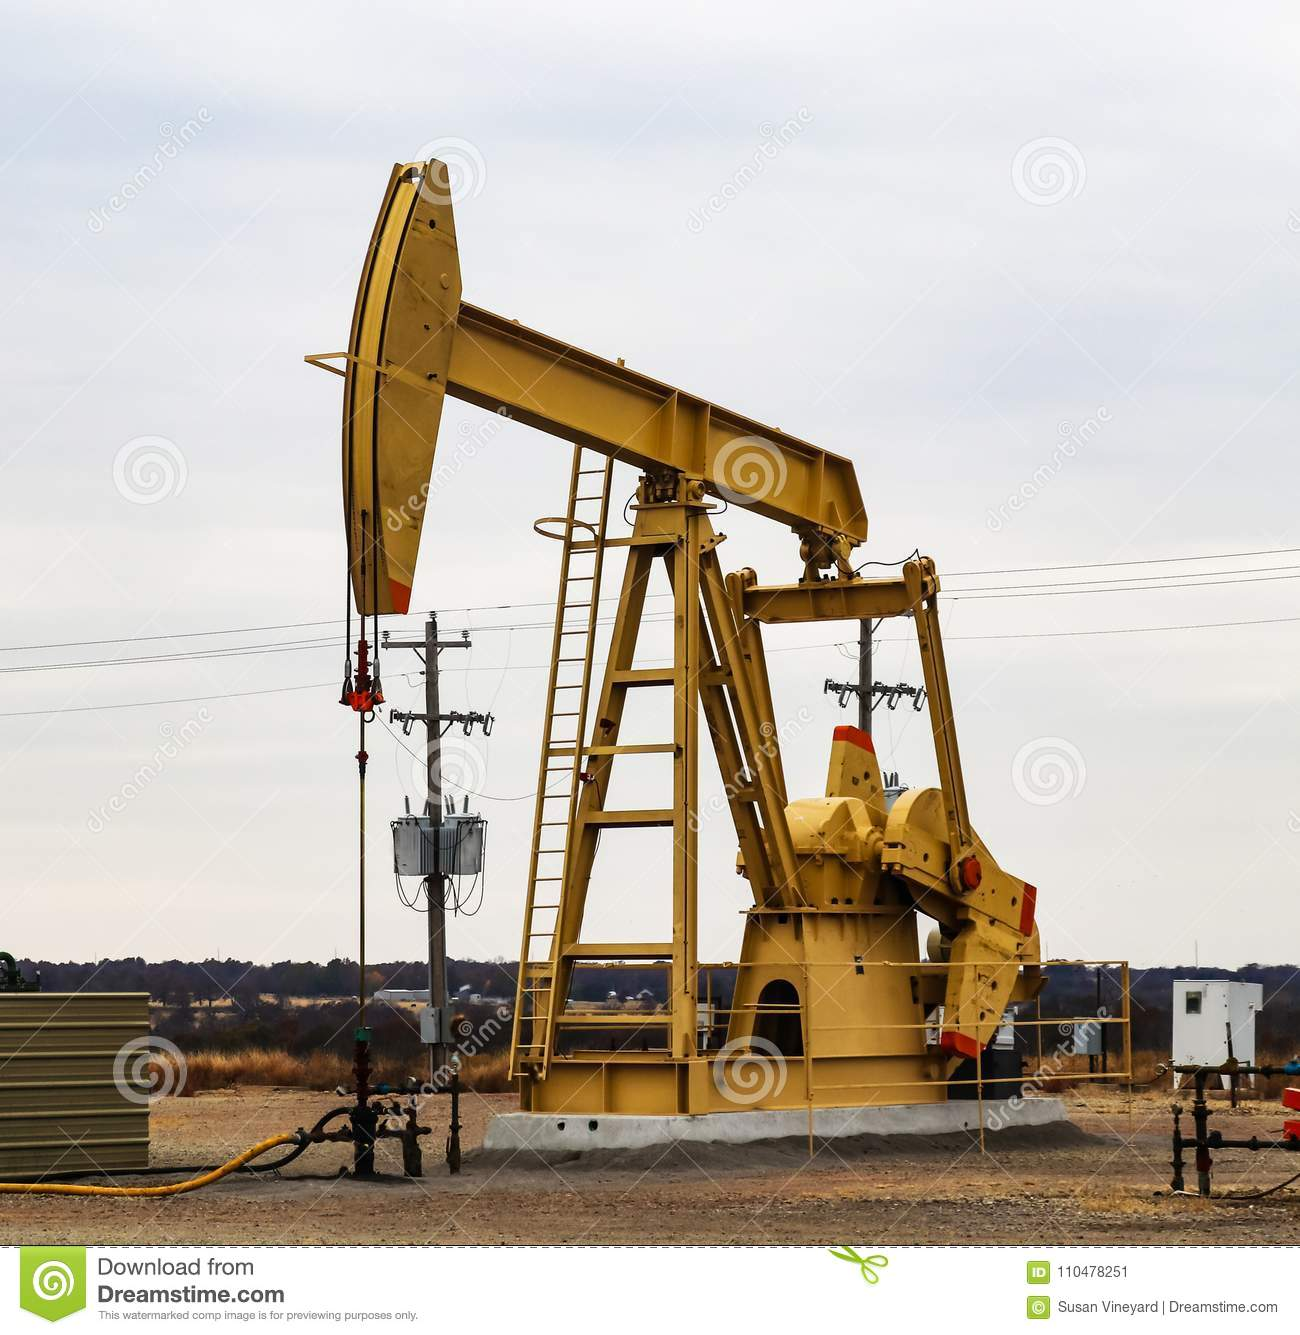 Large Yellow 912 Pump Jack on oil or gas well with surrounding equipment against an overcast sky